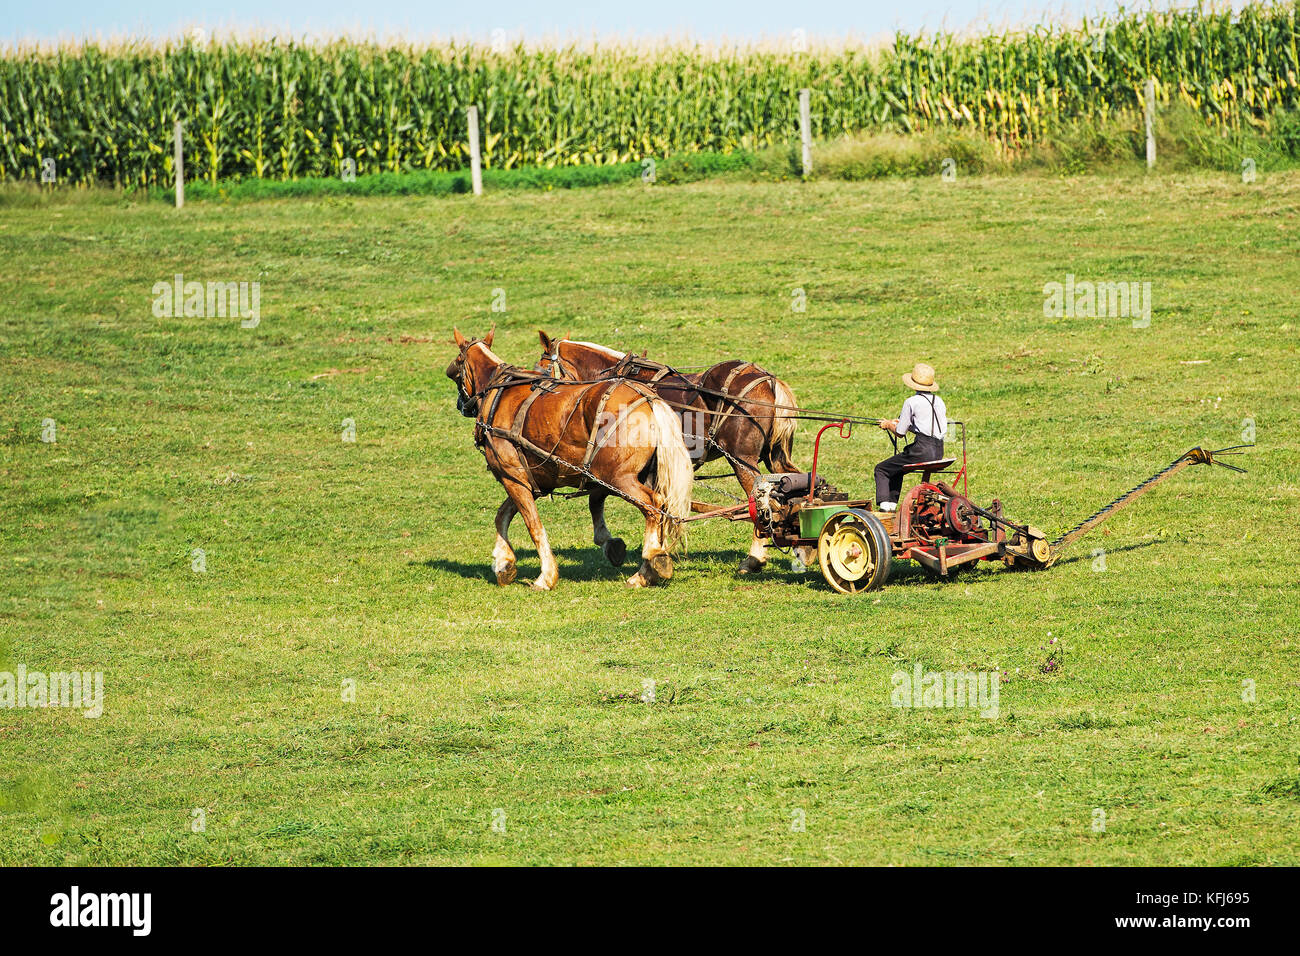 Amish Farmer Ploqing the Land - Stock Image